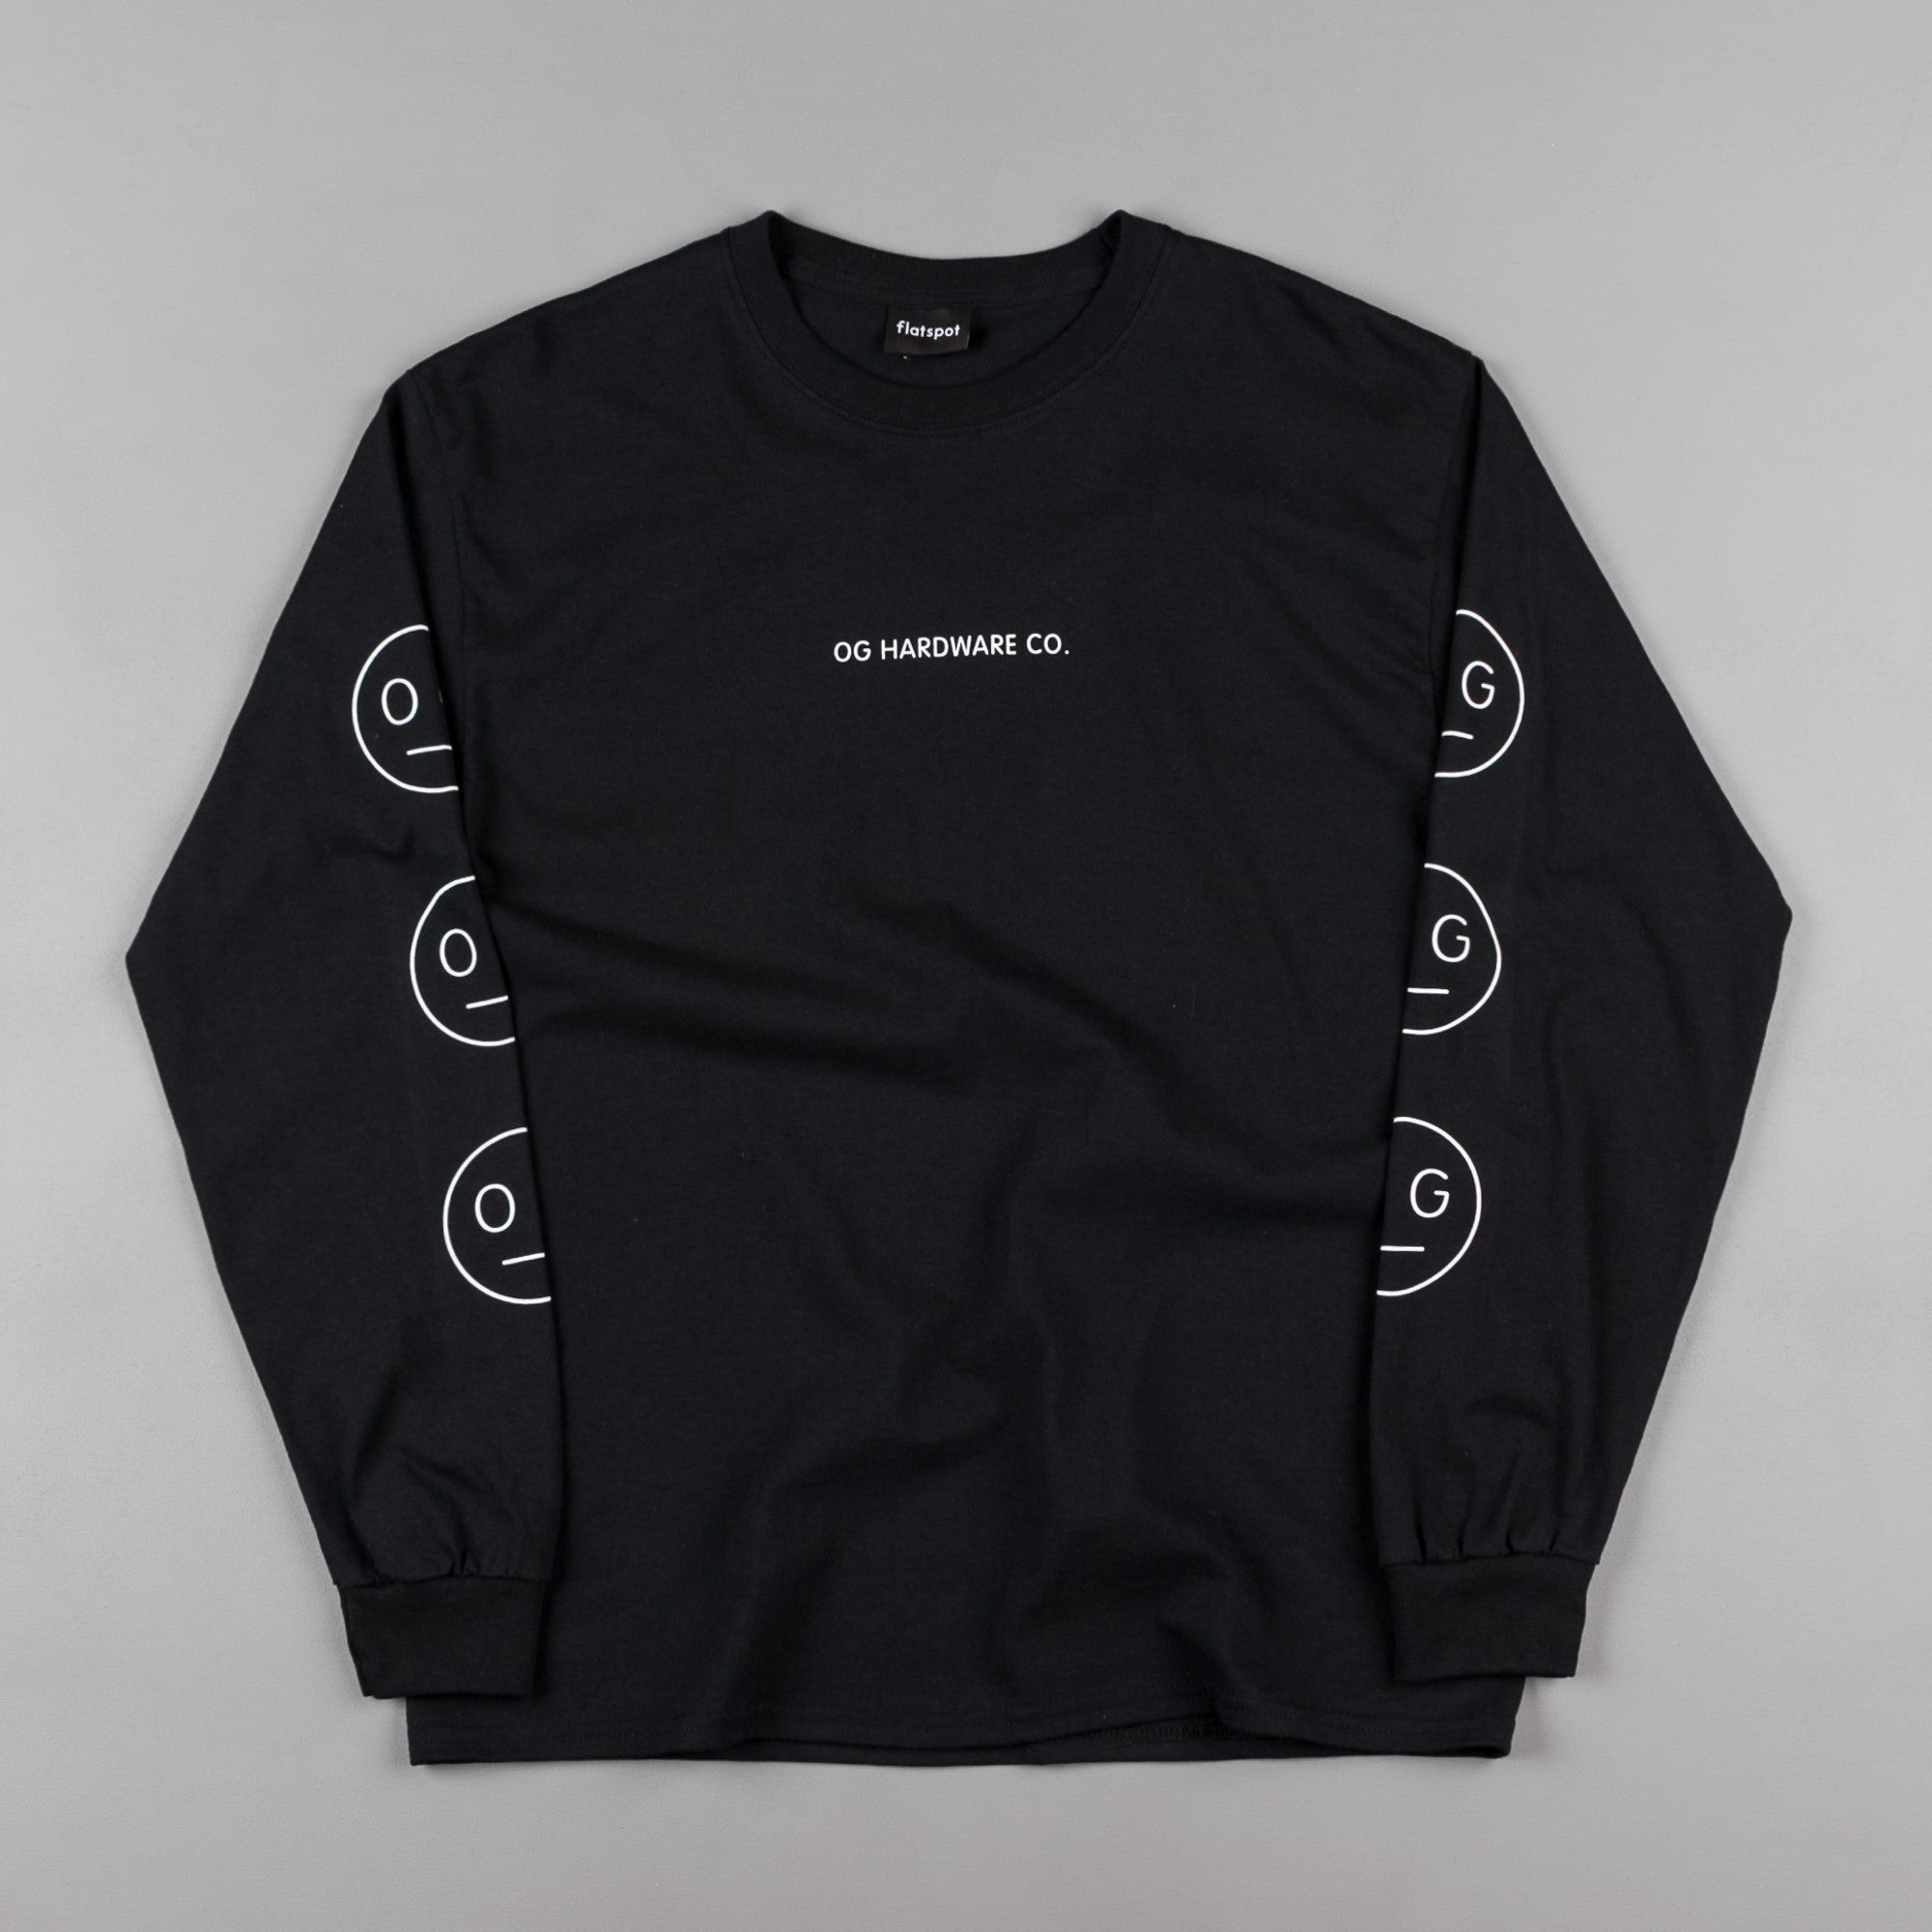 Flatspot OG Hardware Triple OG Long Sleeve T-Shirt - Black